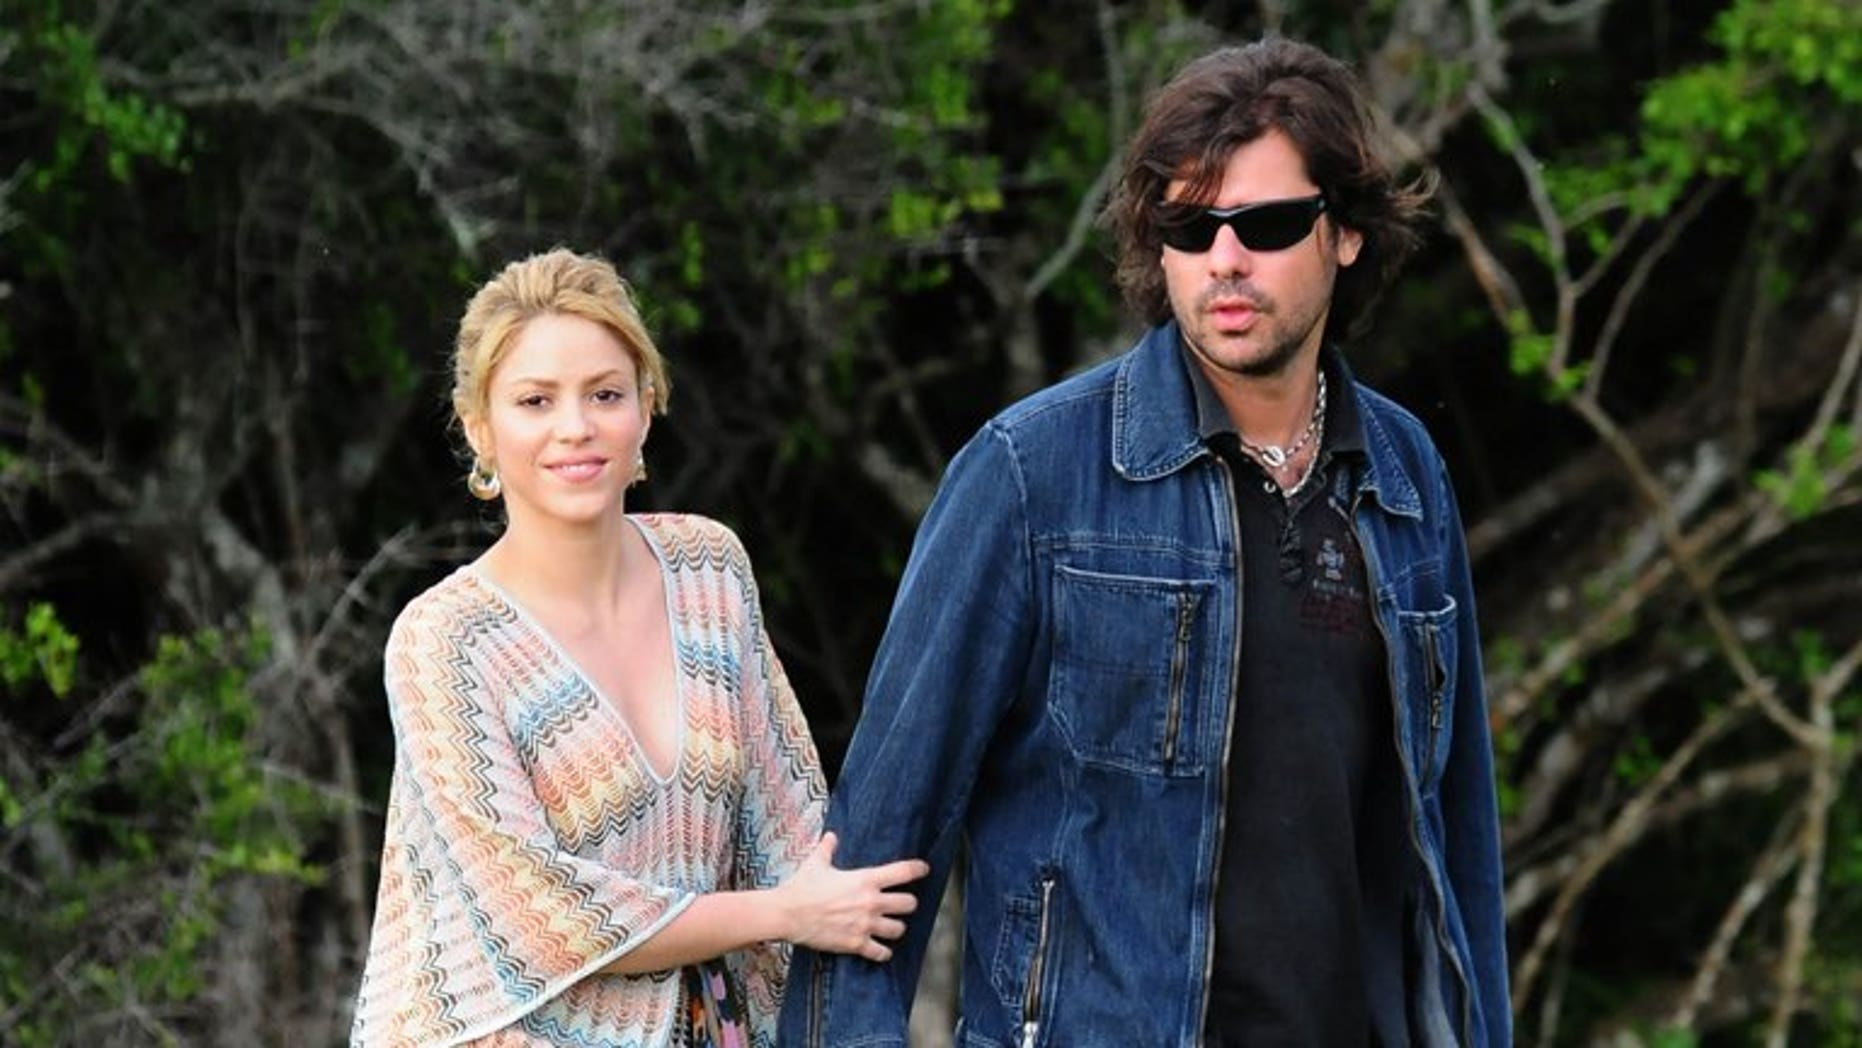 Global pop star Shakira (L) and then-boyfriend Antonio de la Rua stroll through their farmhouse in Jose Ignacio, Uruguay, on December 20, 2009. De la Rua has failed in a bid to get a slice of tens of millions of dollars in a Swiss bank account, in the latest chapter of the former couple's legal battle, lawyers said Monday.